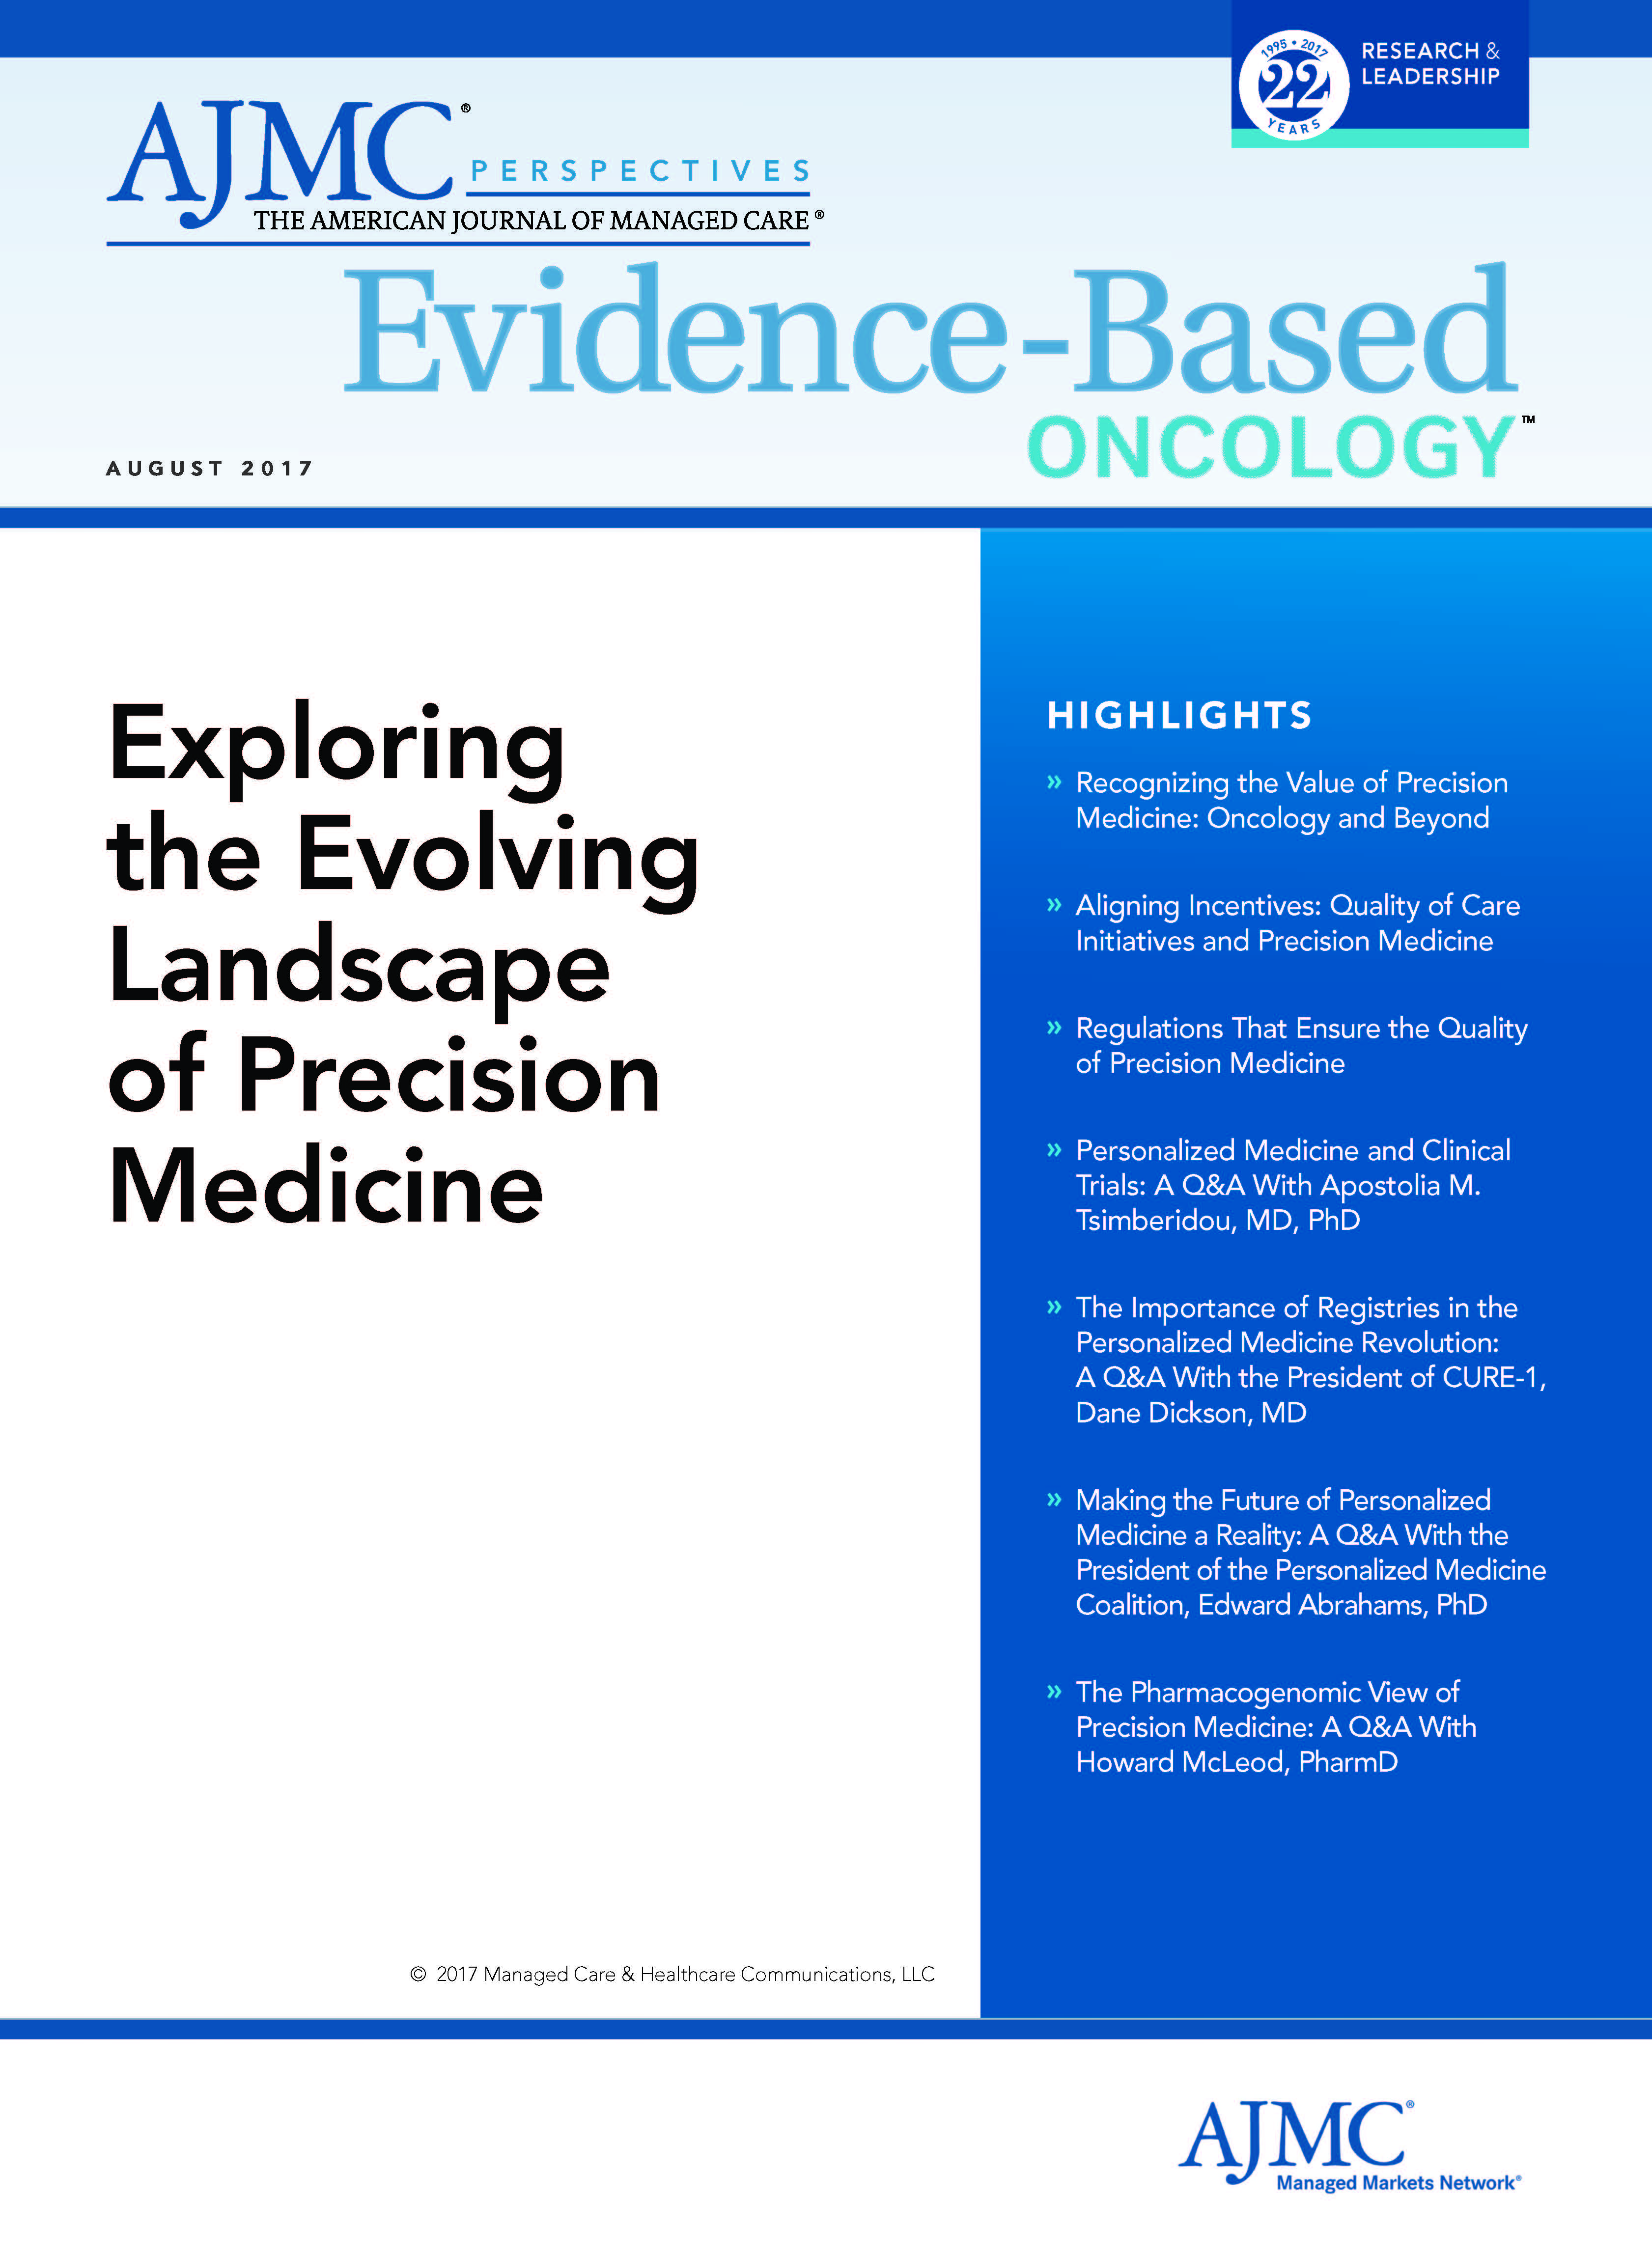 Exploring the Evolving Landscape of Precision Medicine